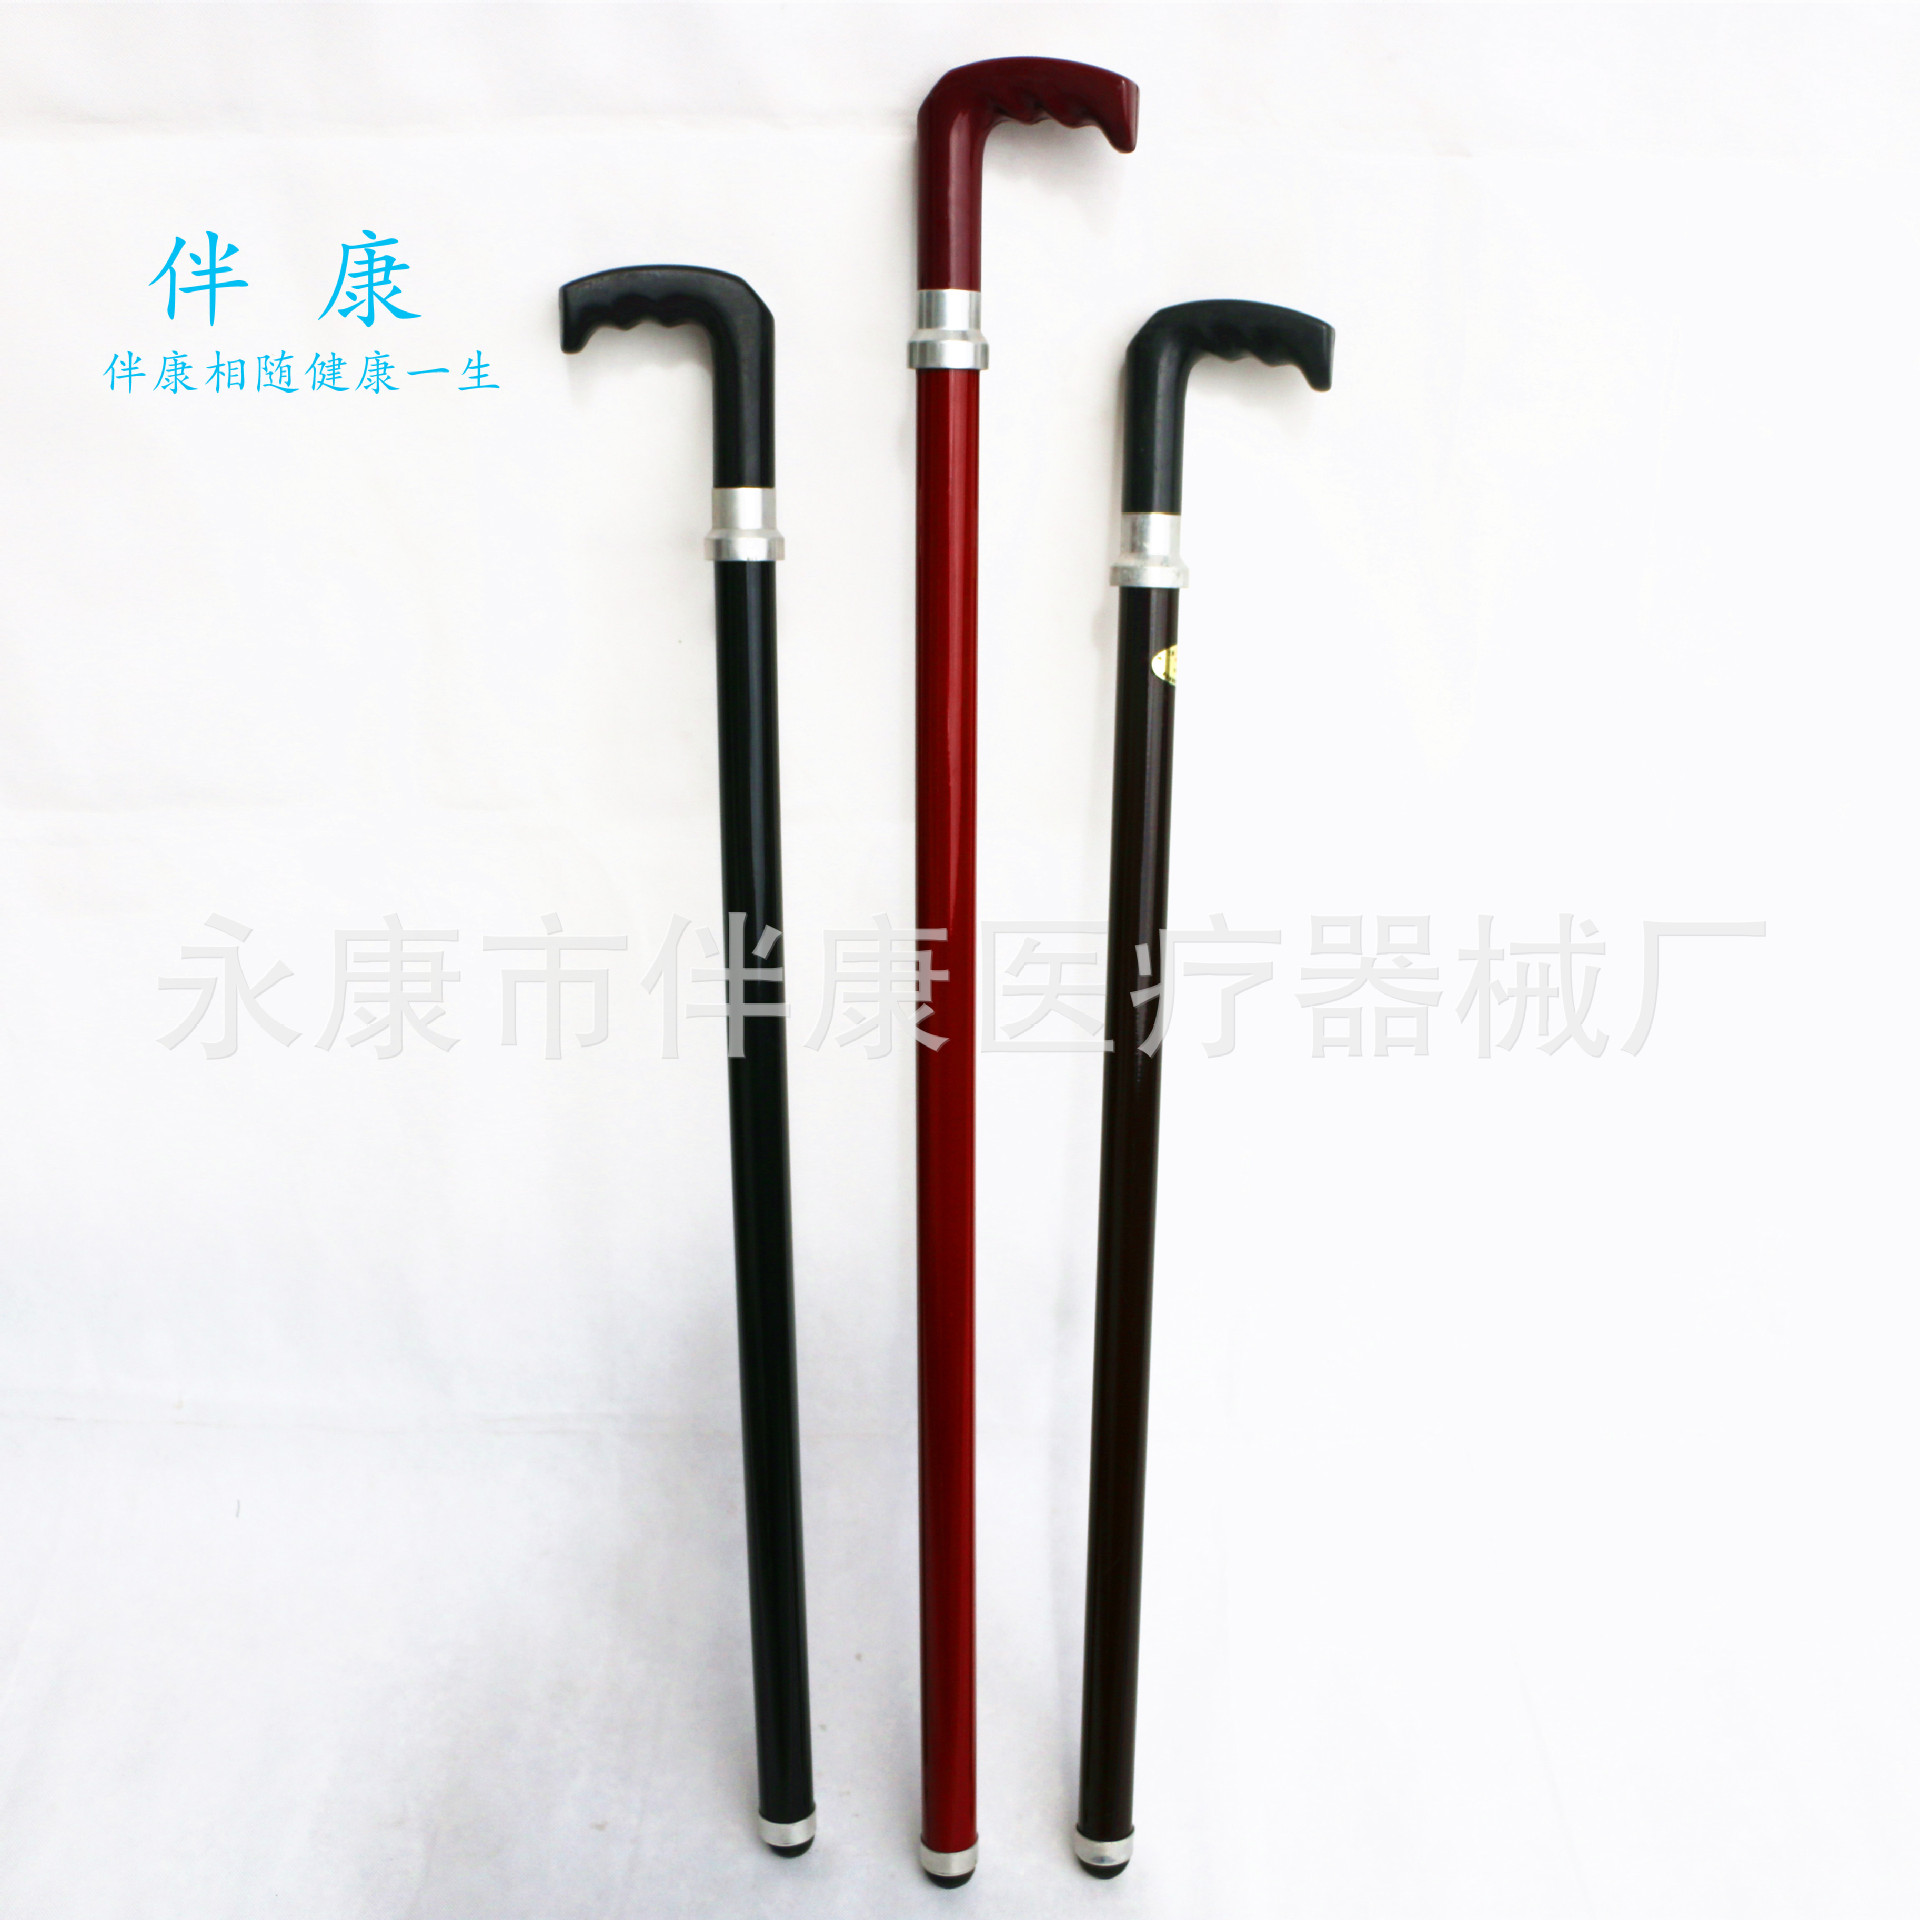 Aluminium Alloy Straight Pole Crutches Wand Alpenstock Cost Price 15 Yuan Price Stock Processing 6 Yuan Processing